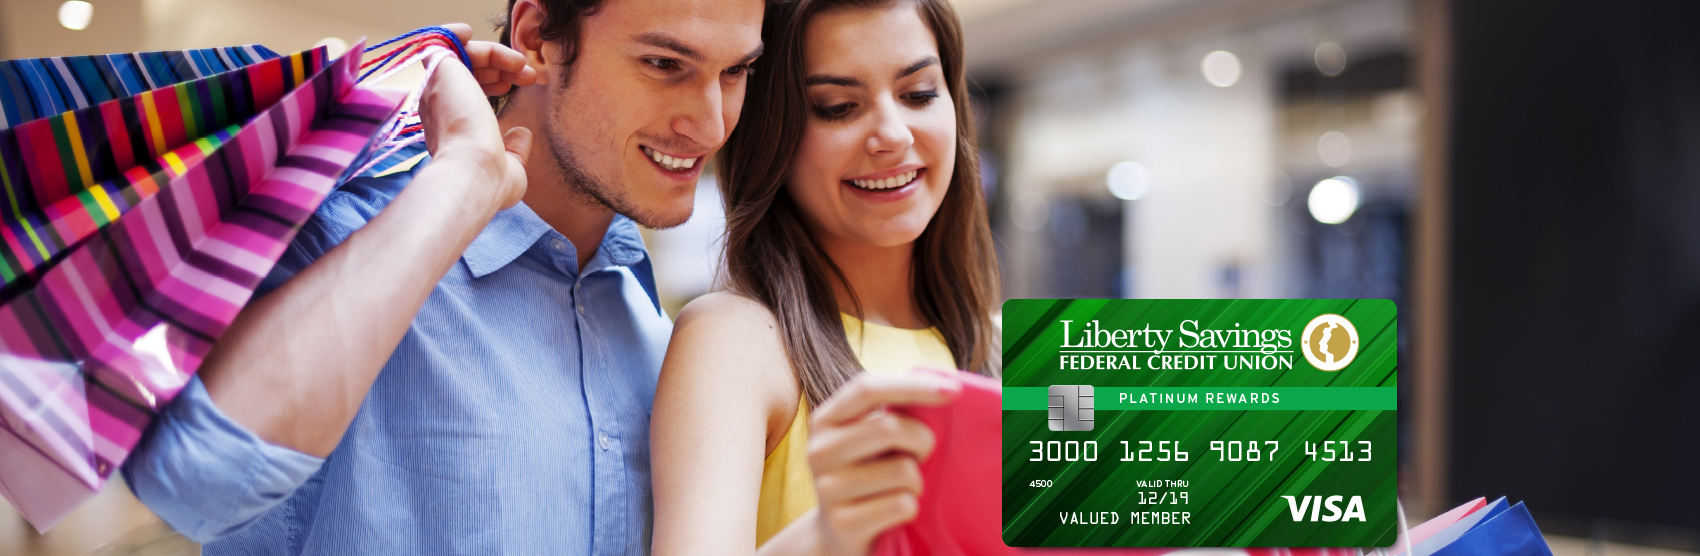 Photo of couple shopping for clothes with Visa card image